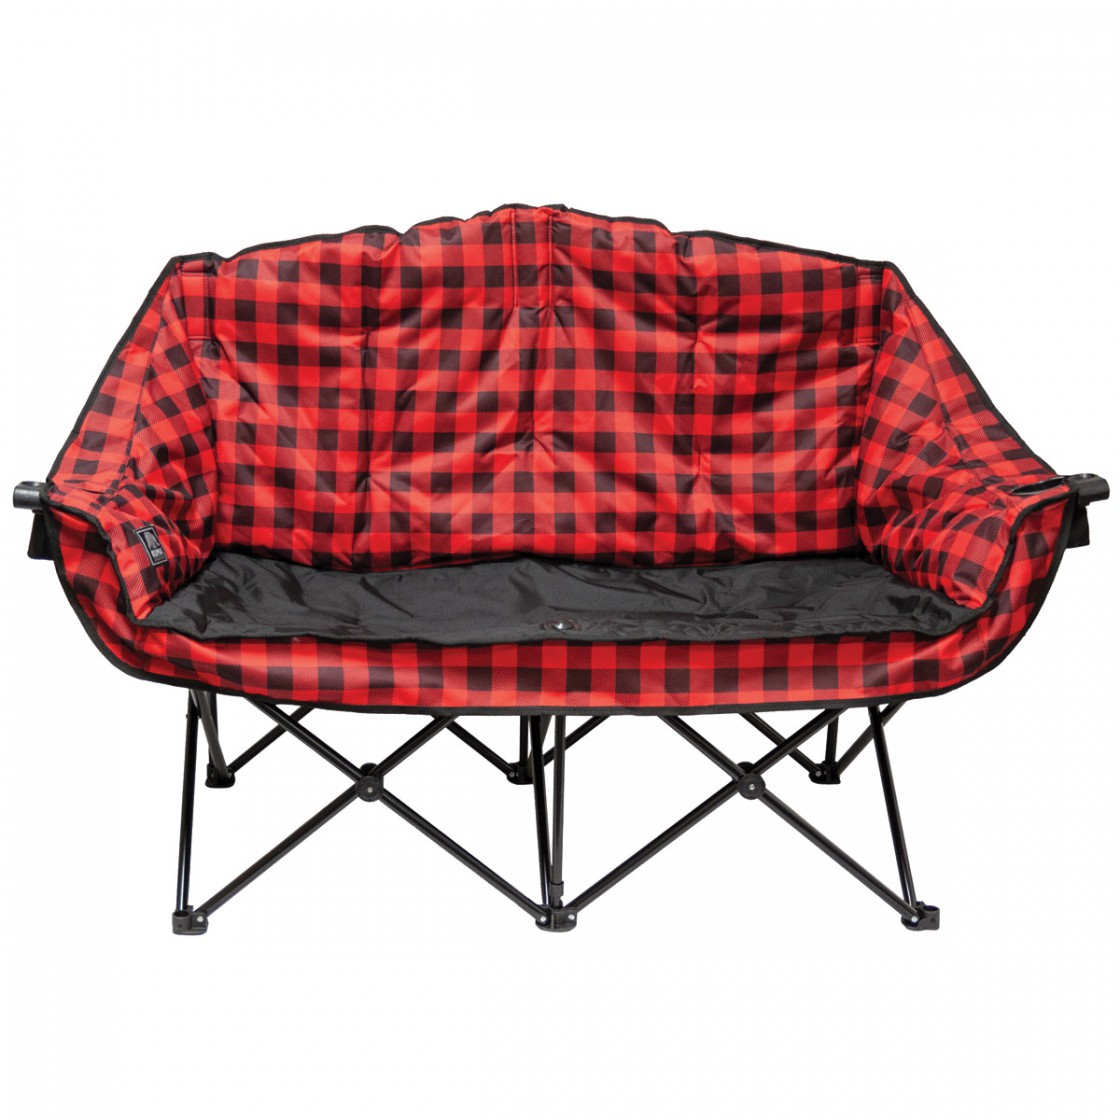 kuma bear buddy chair - red plaid